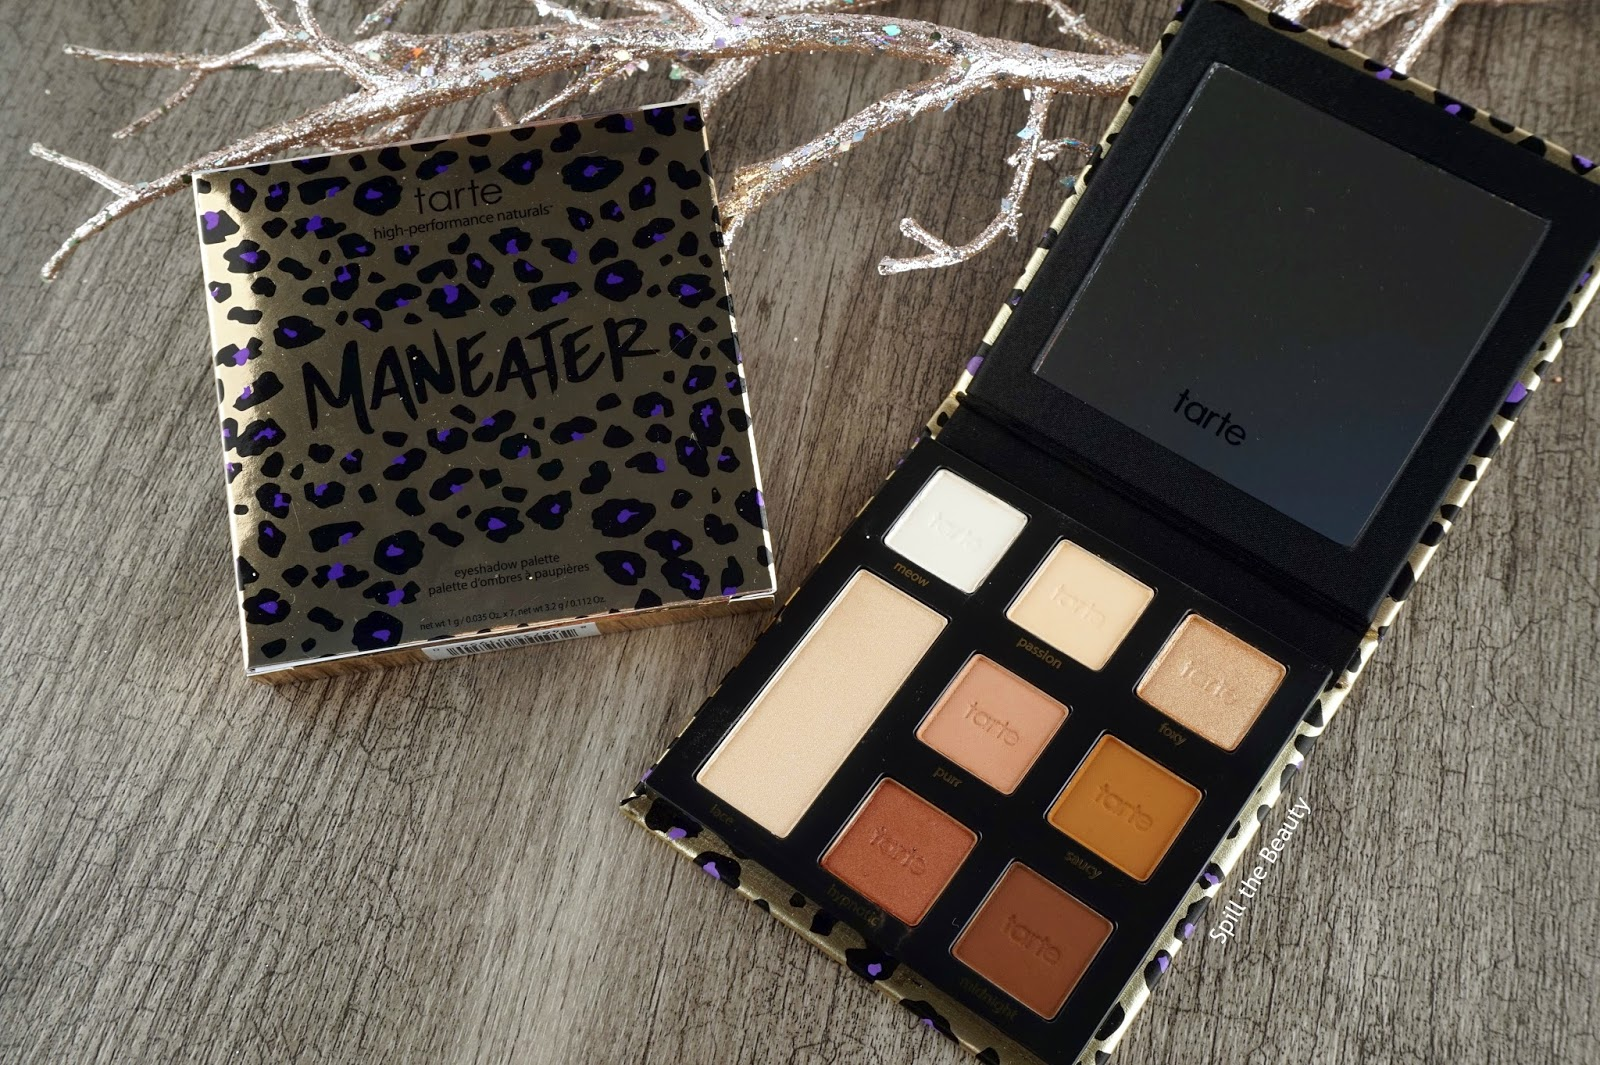 Tarte 'Maneater' Palette – Review, Swatches, and Look